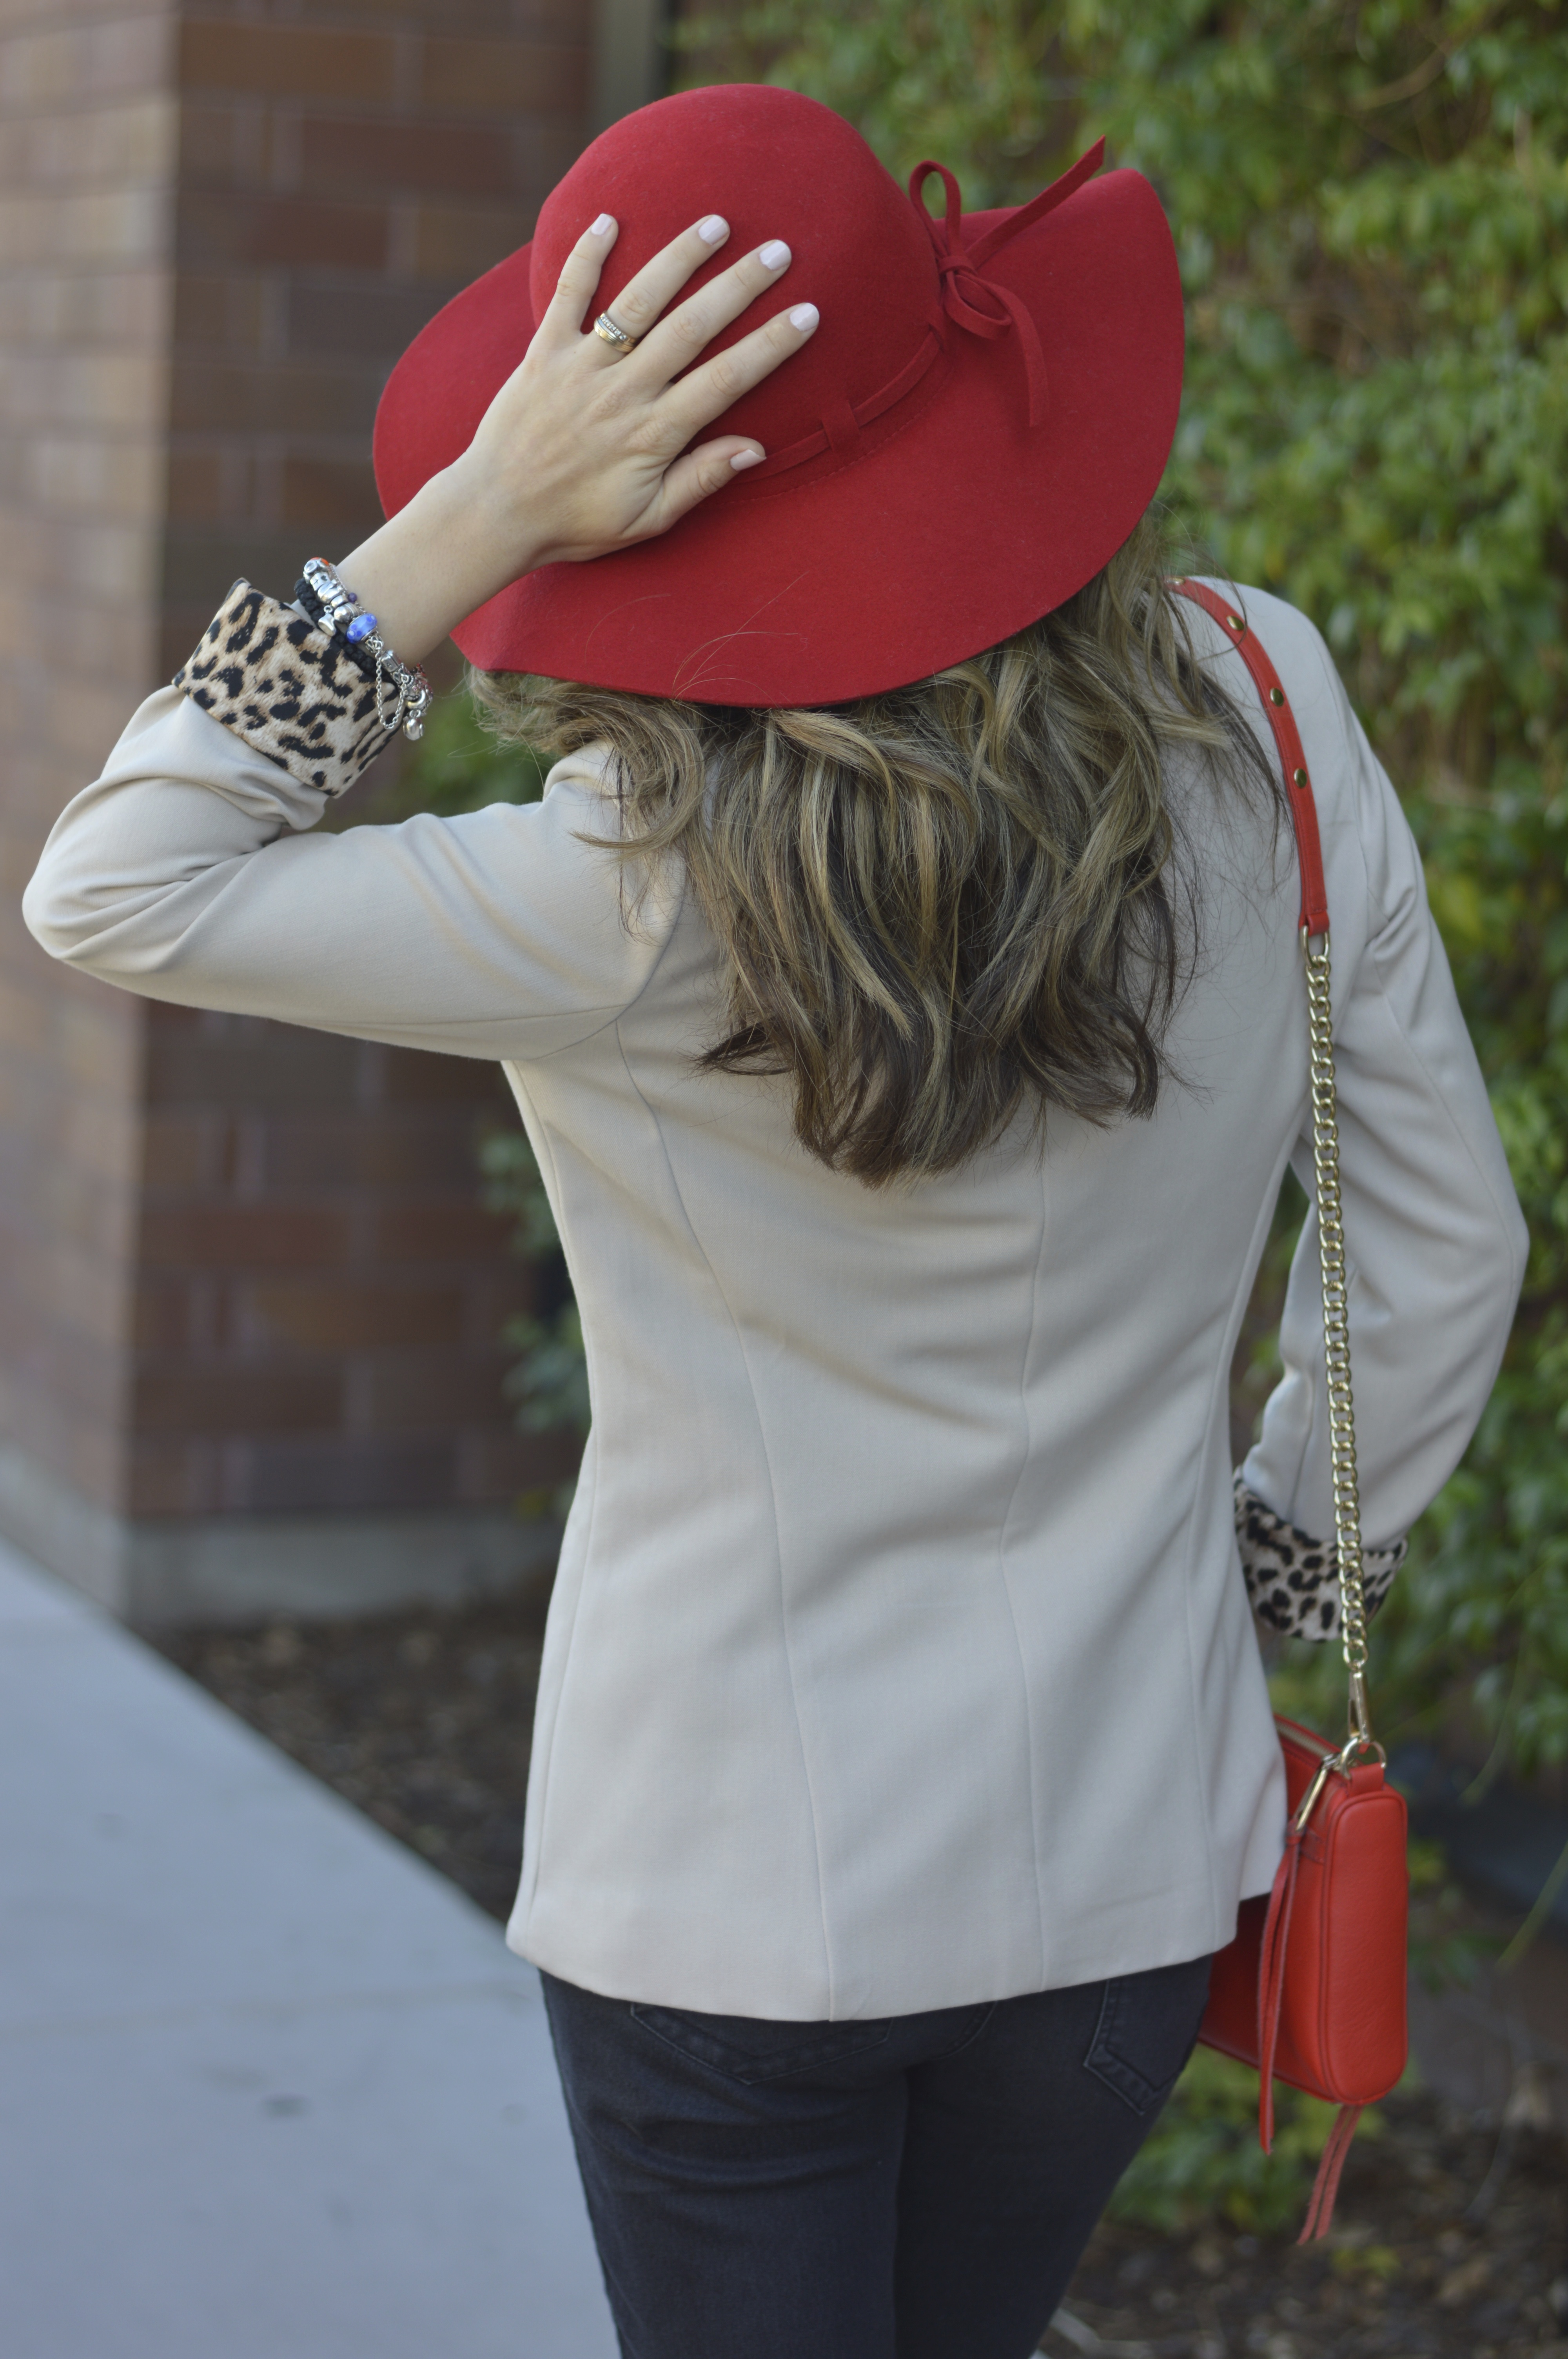 Red Hat and Cheetah Blazer f8a99d8209b